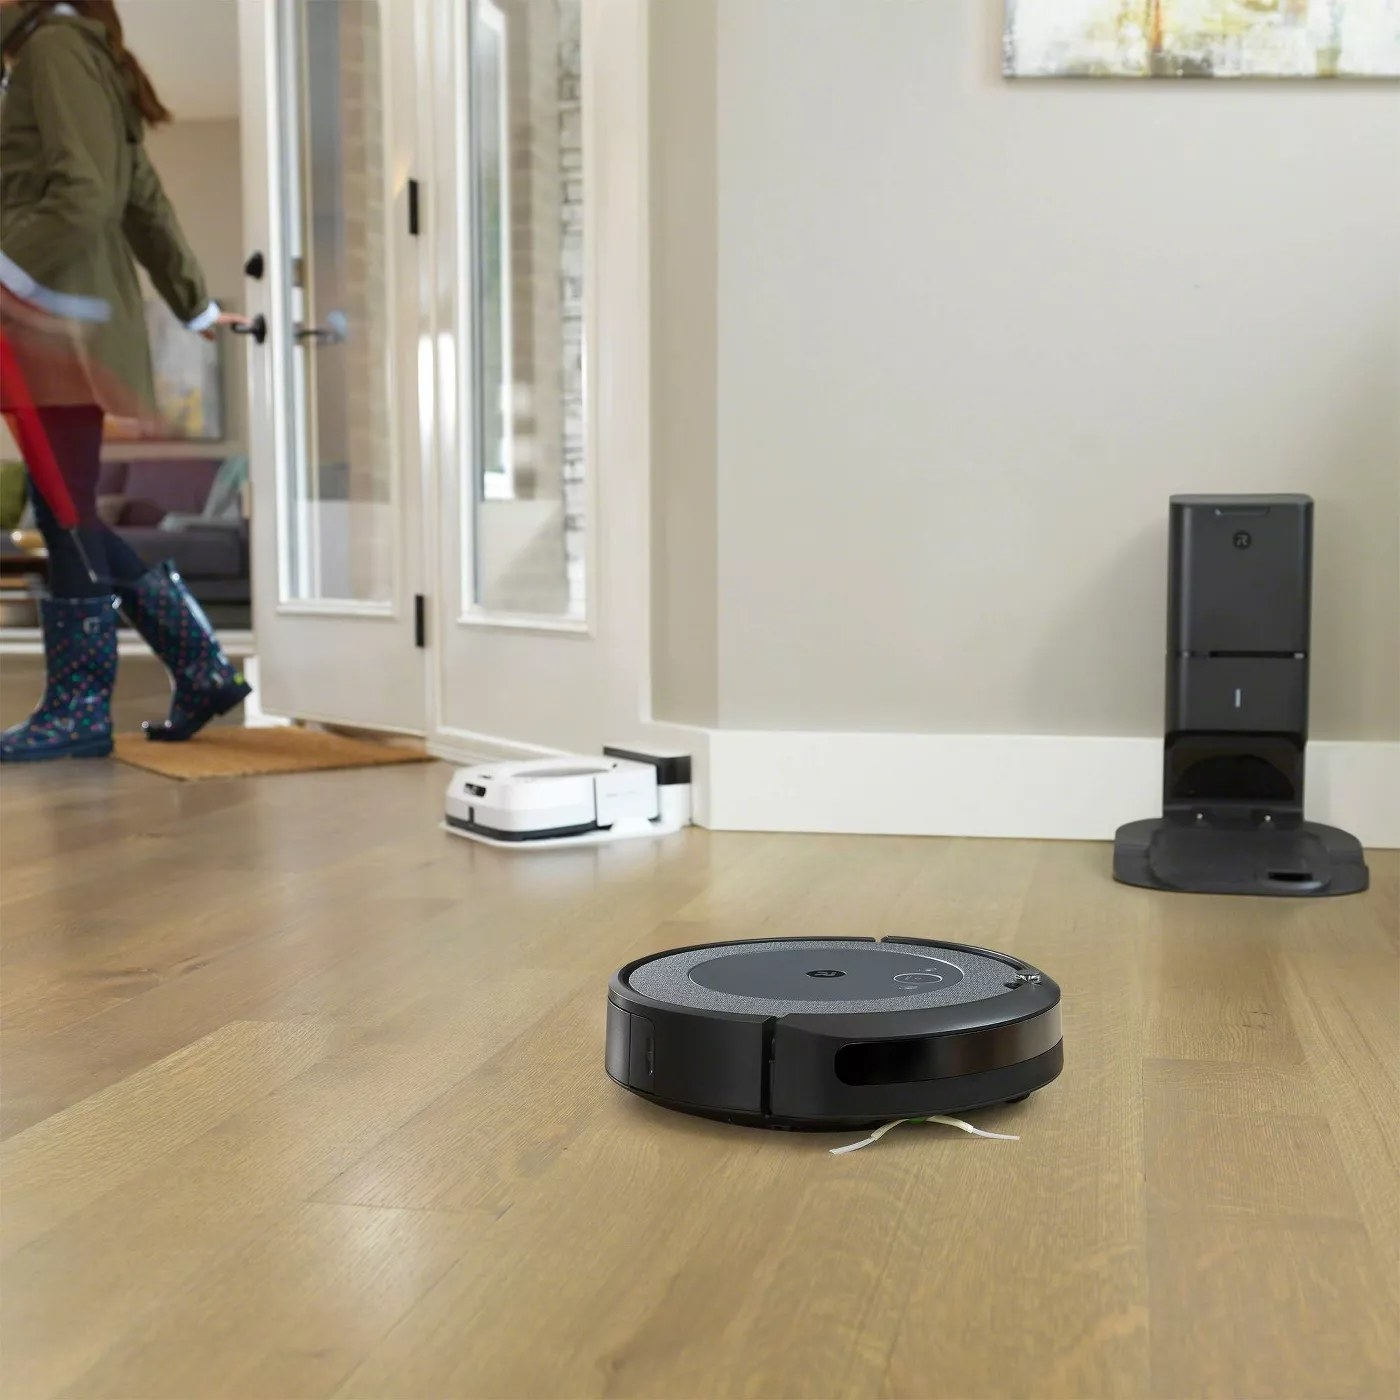 The Roomba vacuum and its base